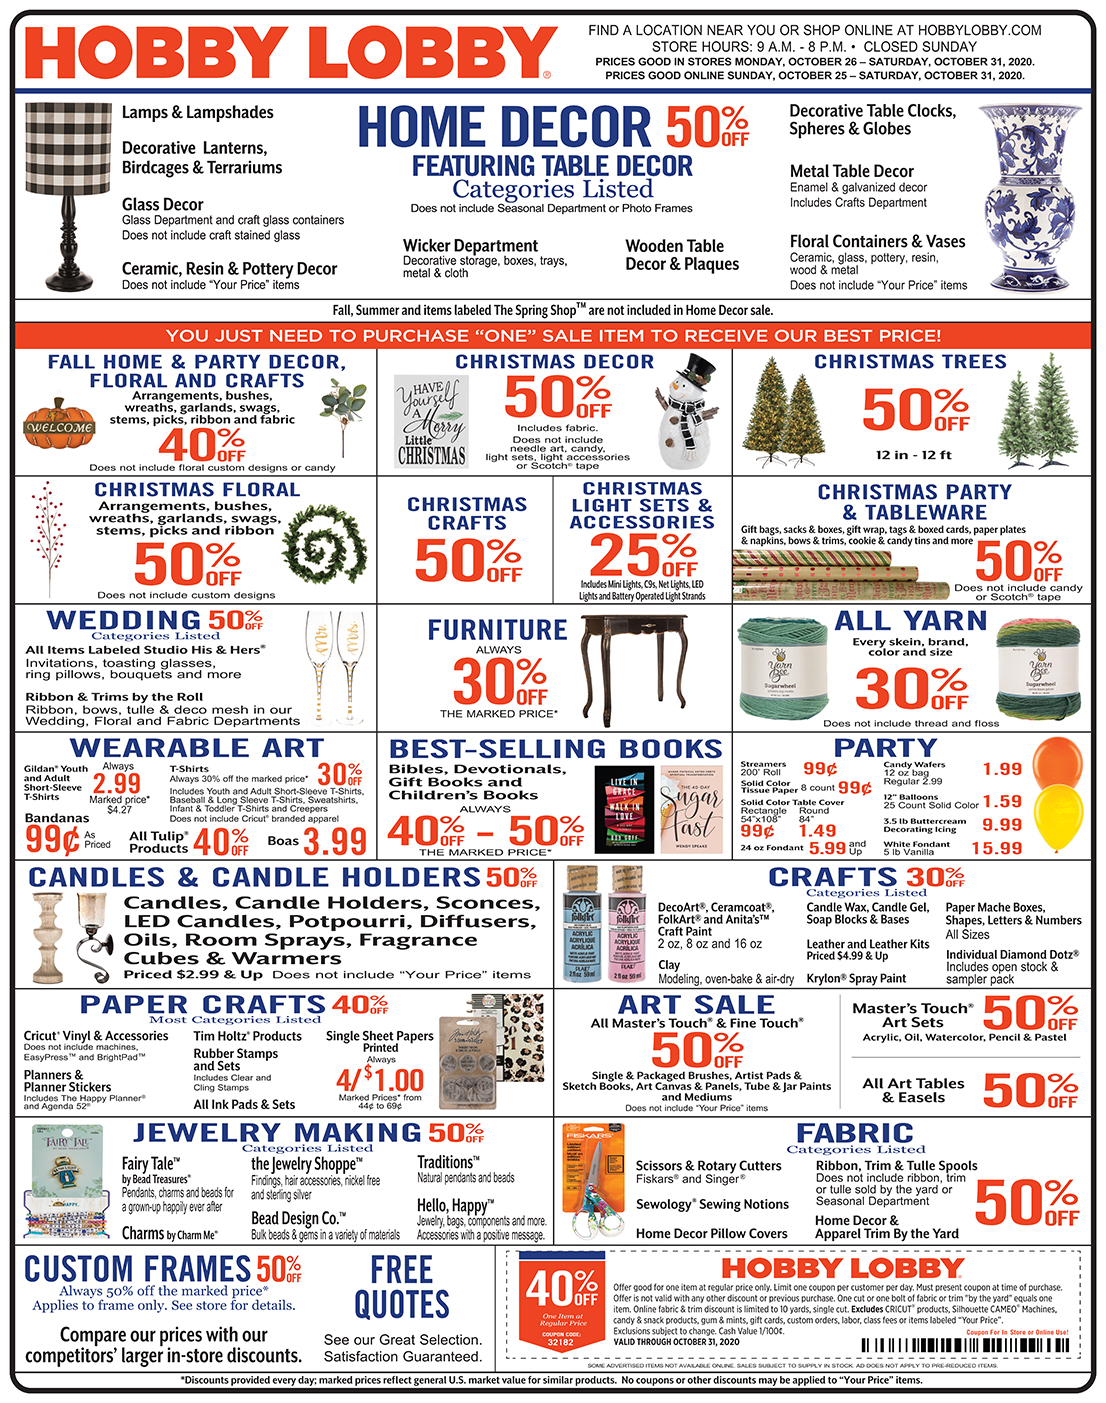 Hobby Lobby Weekly Ad - Prices Good Through October 31st 2020